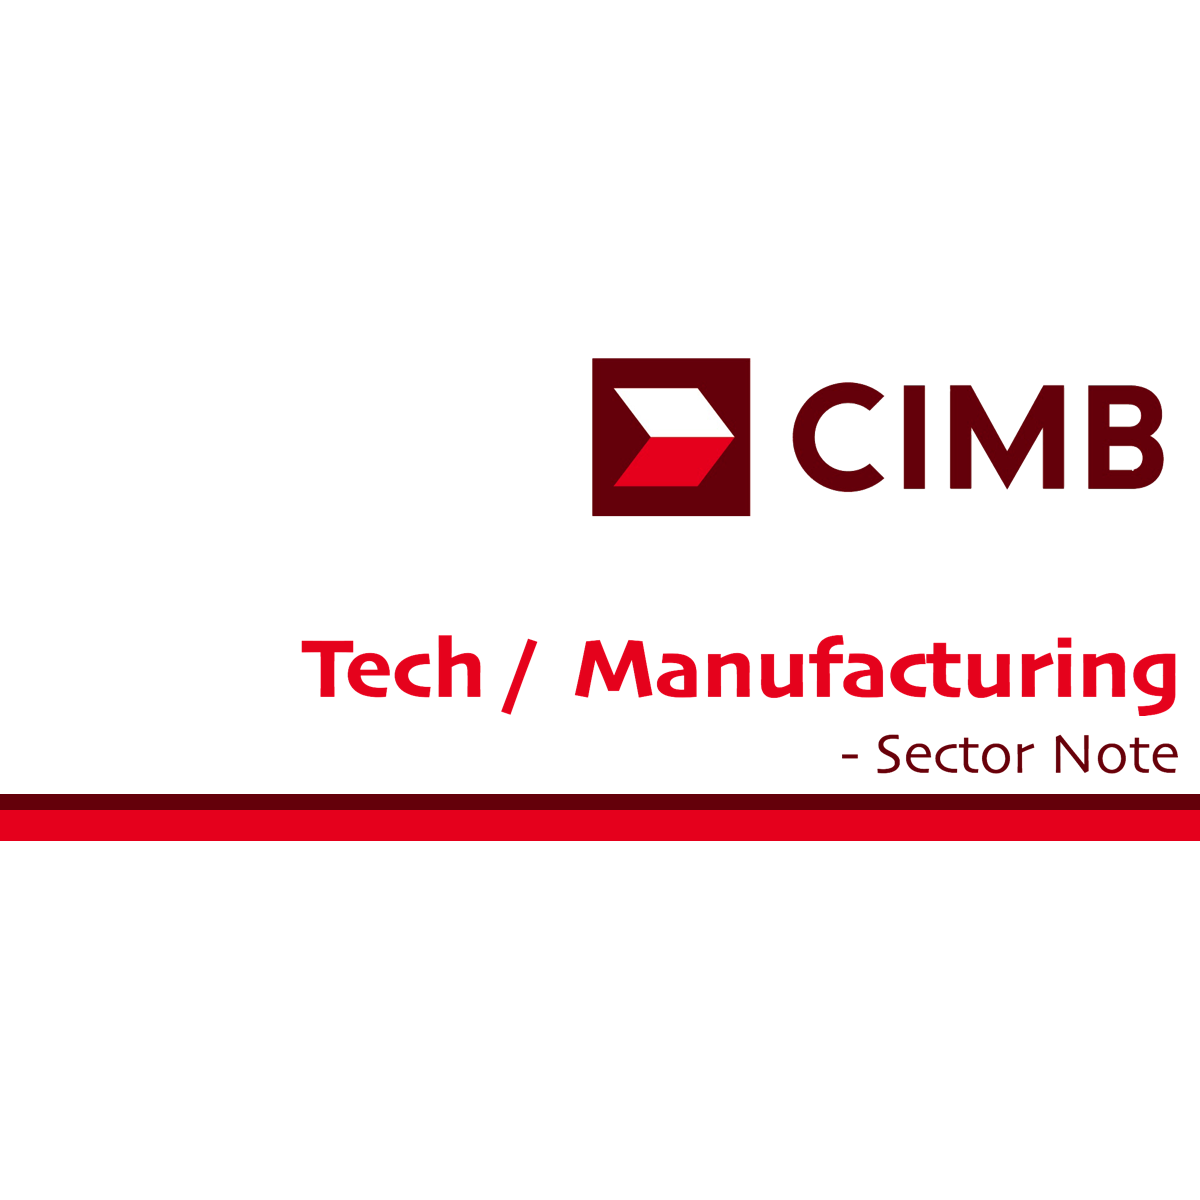 Navigating Singapore ~ Tech/manufacturing and others - CIMB Research 2016-12-05: Revival of the EMS industry